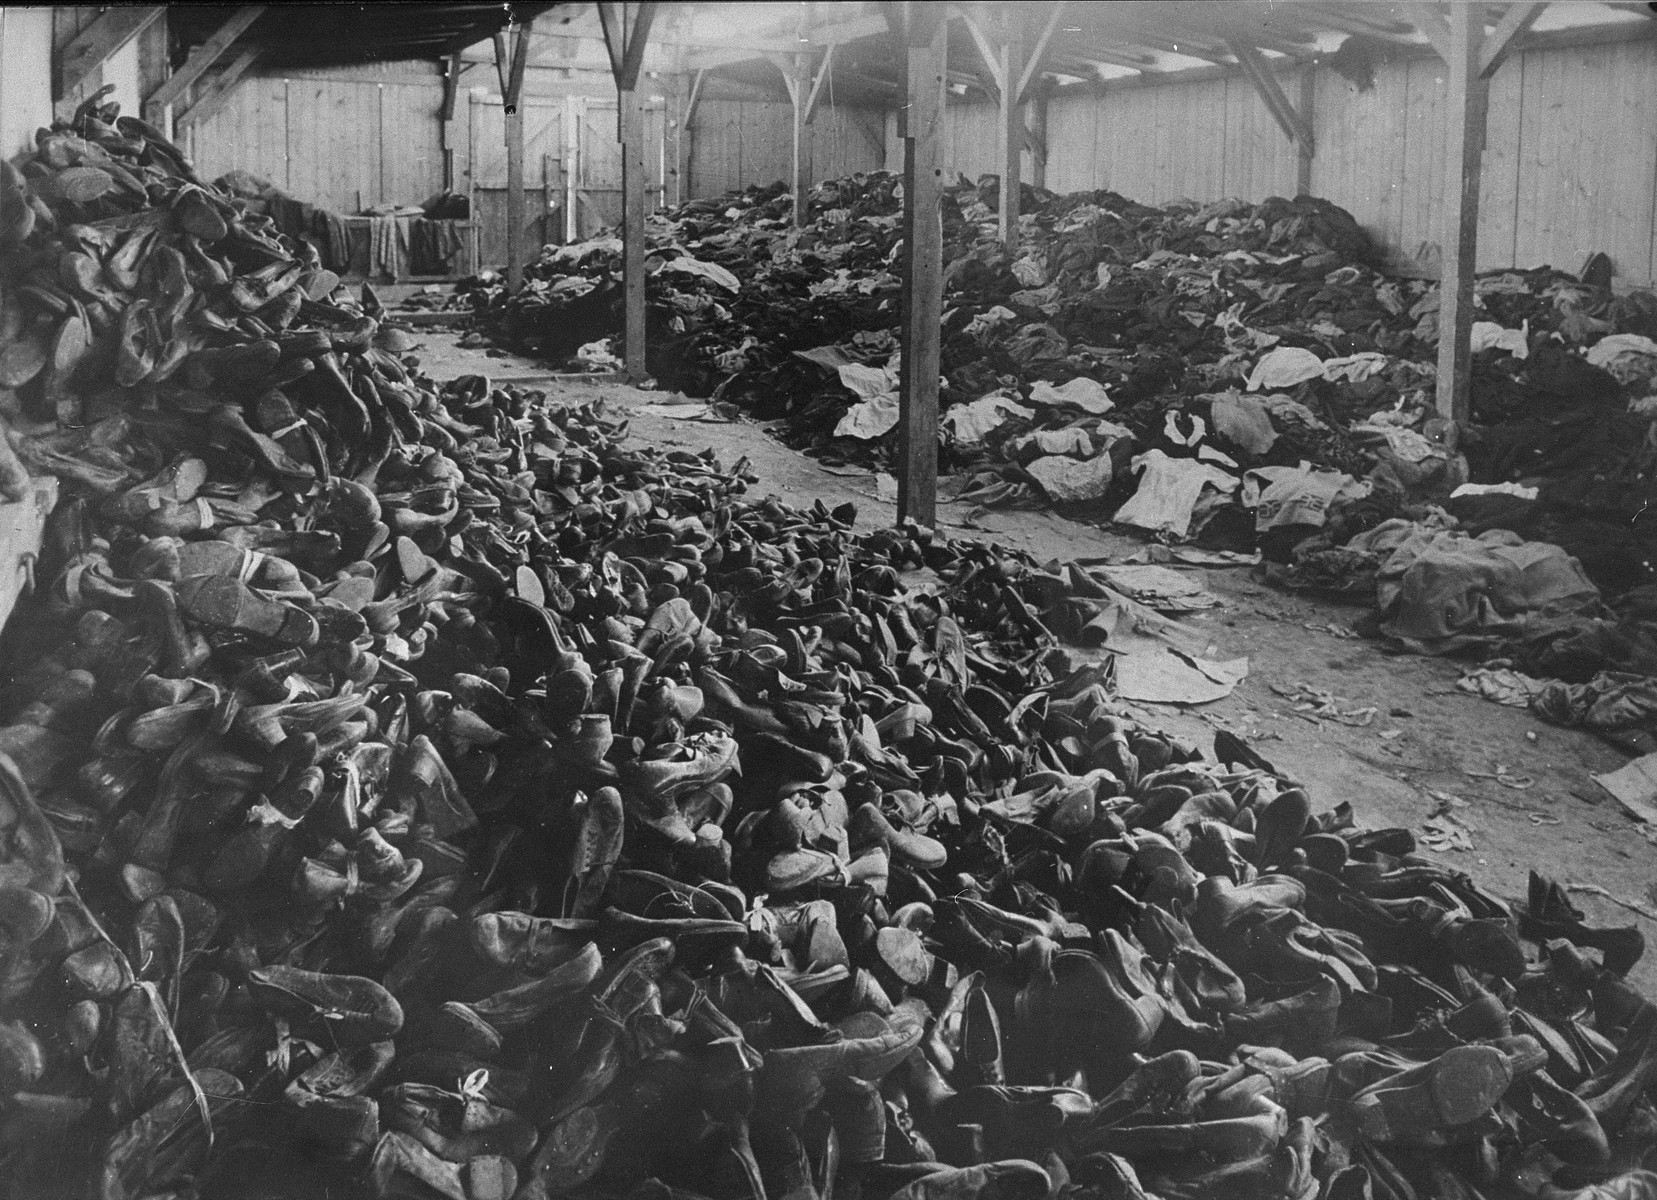 A warehouse full of shoes and clothing confiscated from the prisoners and deportees gassed upon their arrival. The Germans shipped these goods to Germany.   STILL PHOTOGRAPH FROM THE SOVIET FILM of the liberation of Auschwitz, taken by the film unit of the First Ukrainian Front.